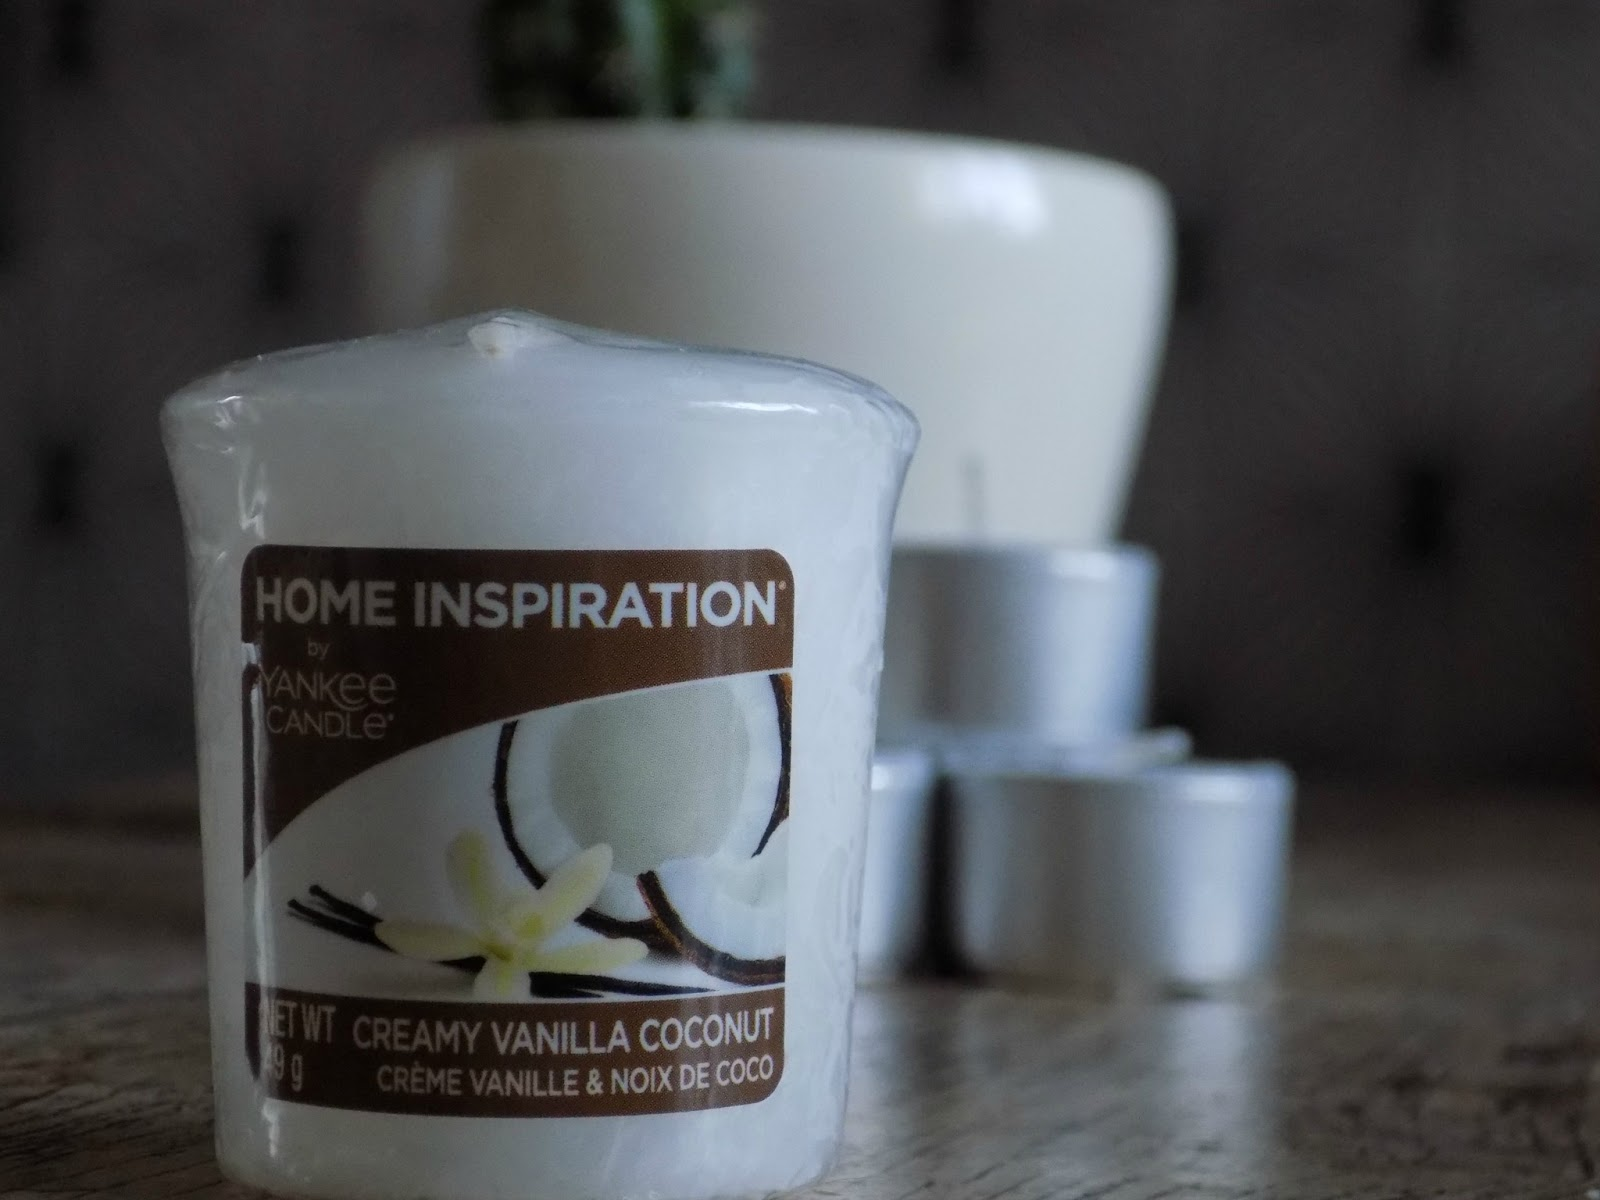 Yankee candle home inspirations creamy vanilla and coconut